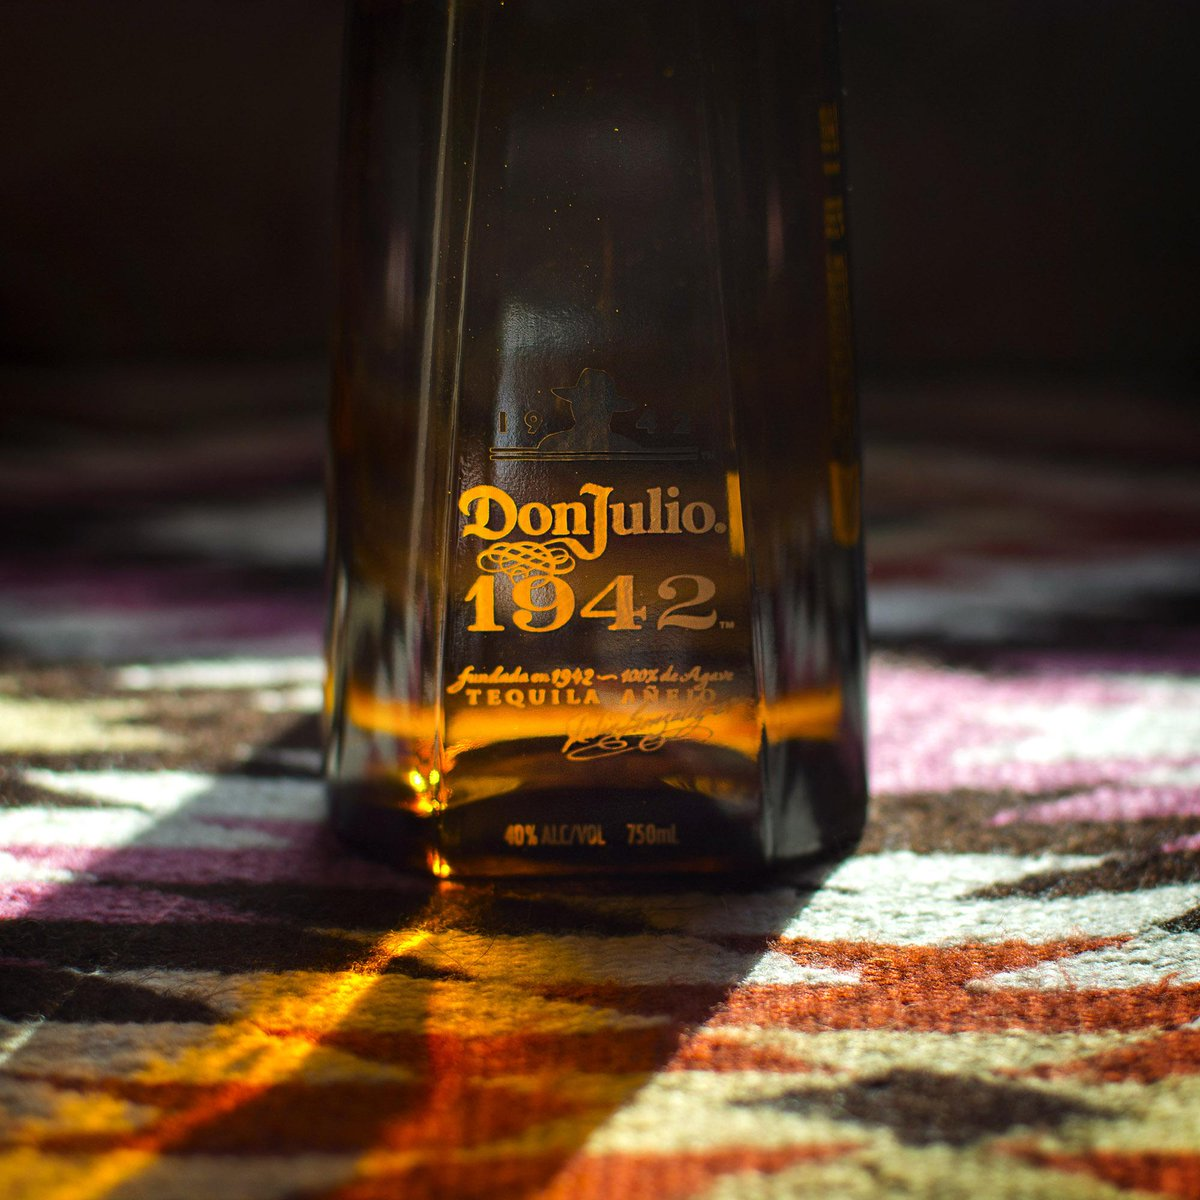 No introduction needed. #DonJulio1942 http://t.co/eu8zViaHBR